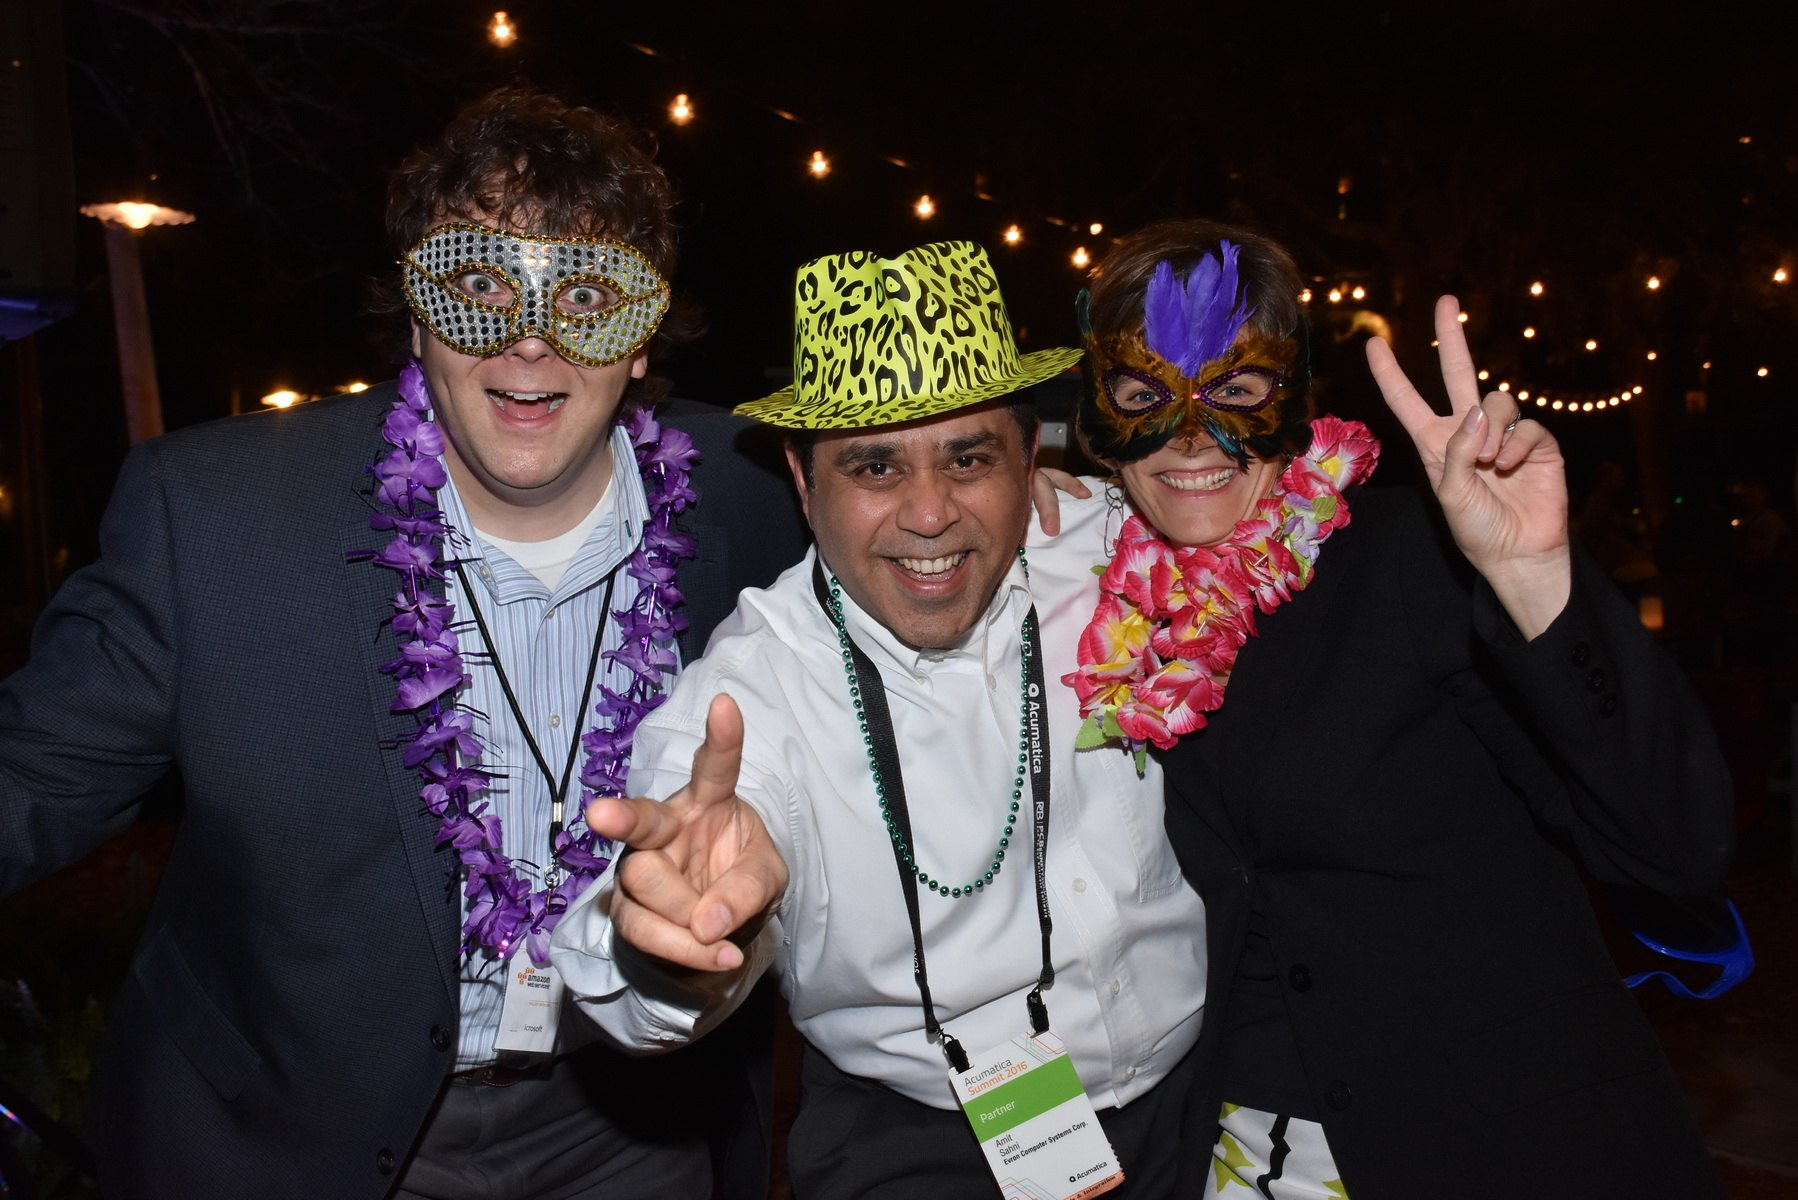 Attendees enjoying the photo booth garb